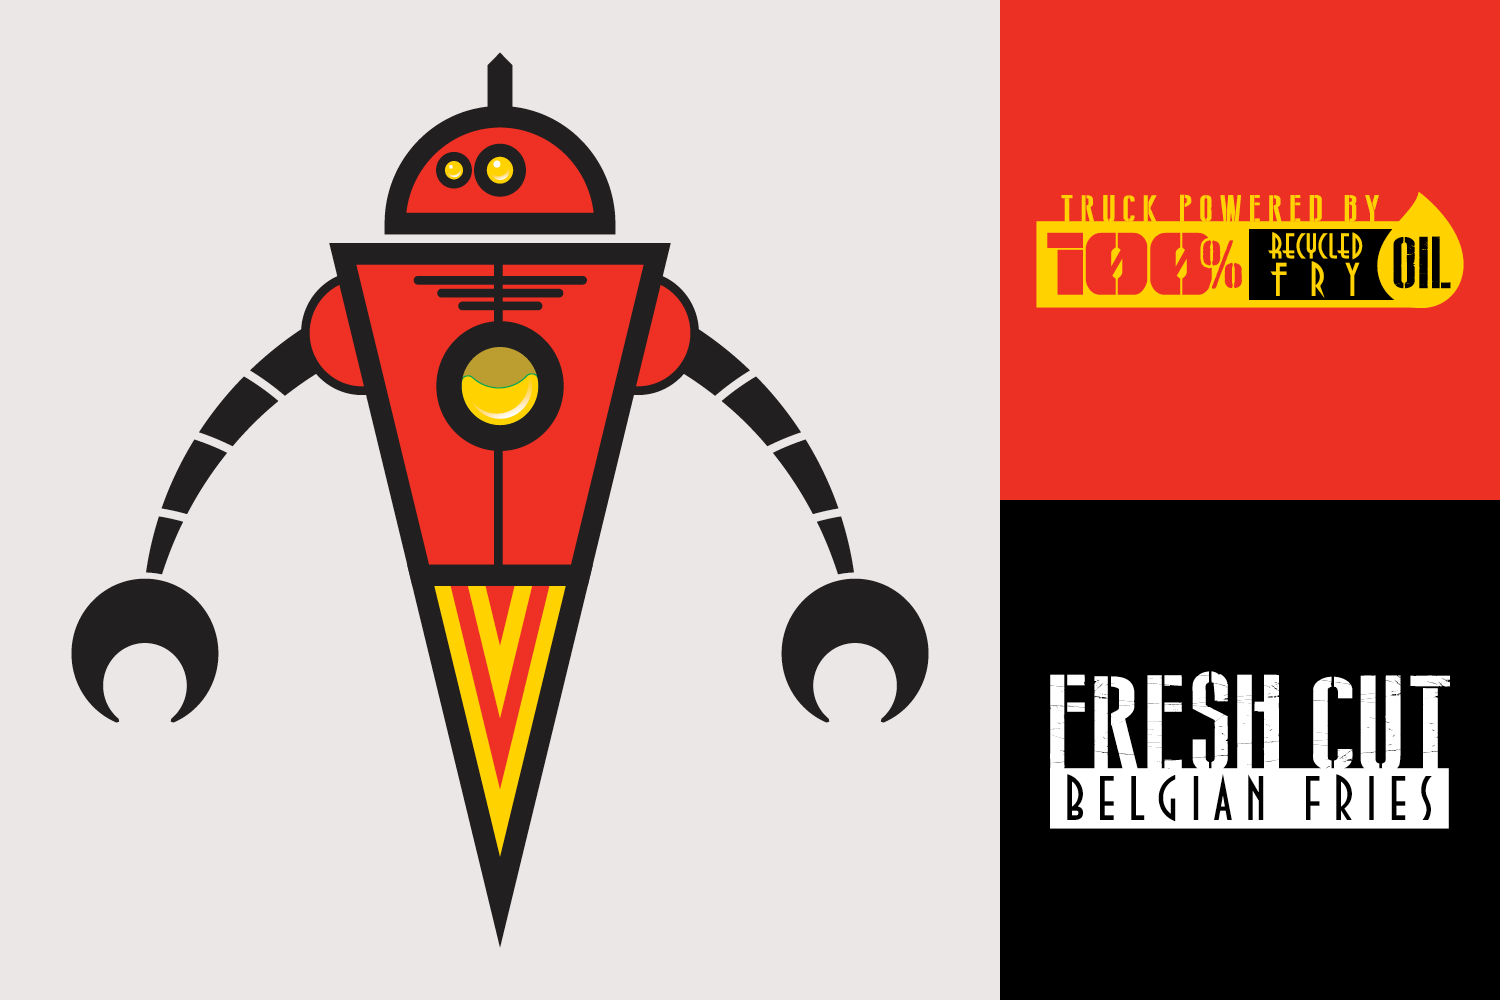 farmboy-powered-by-fries-design-elements